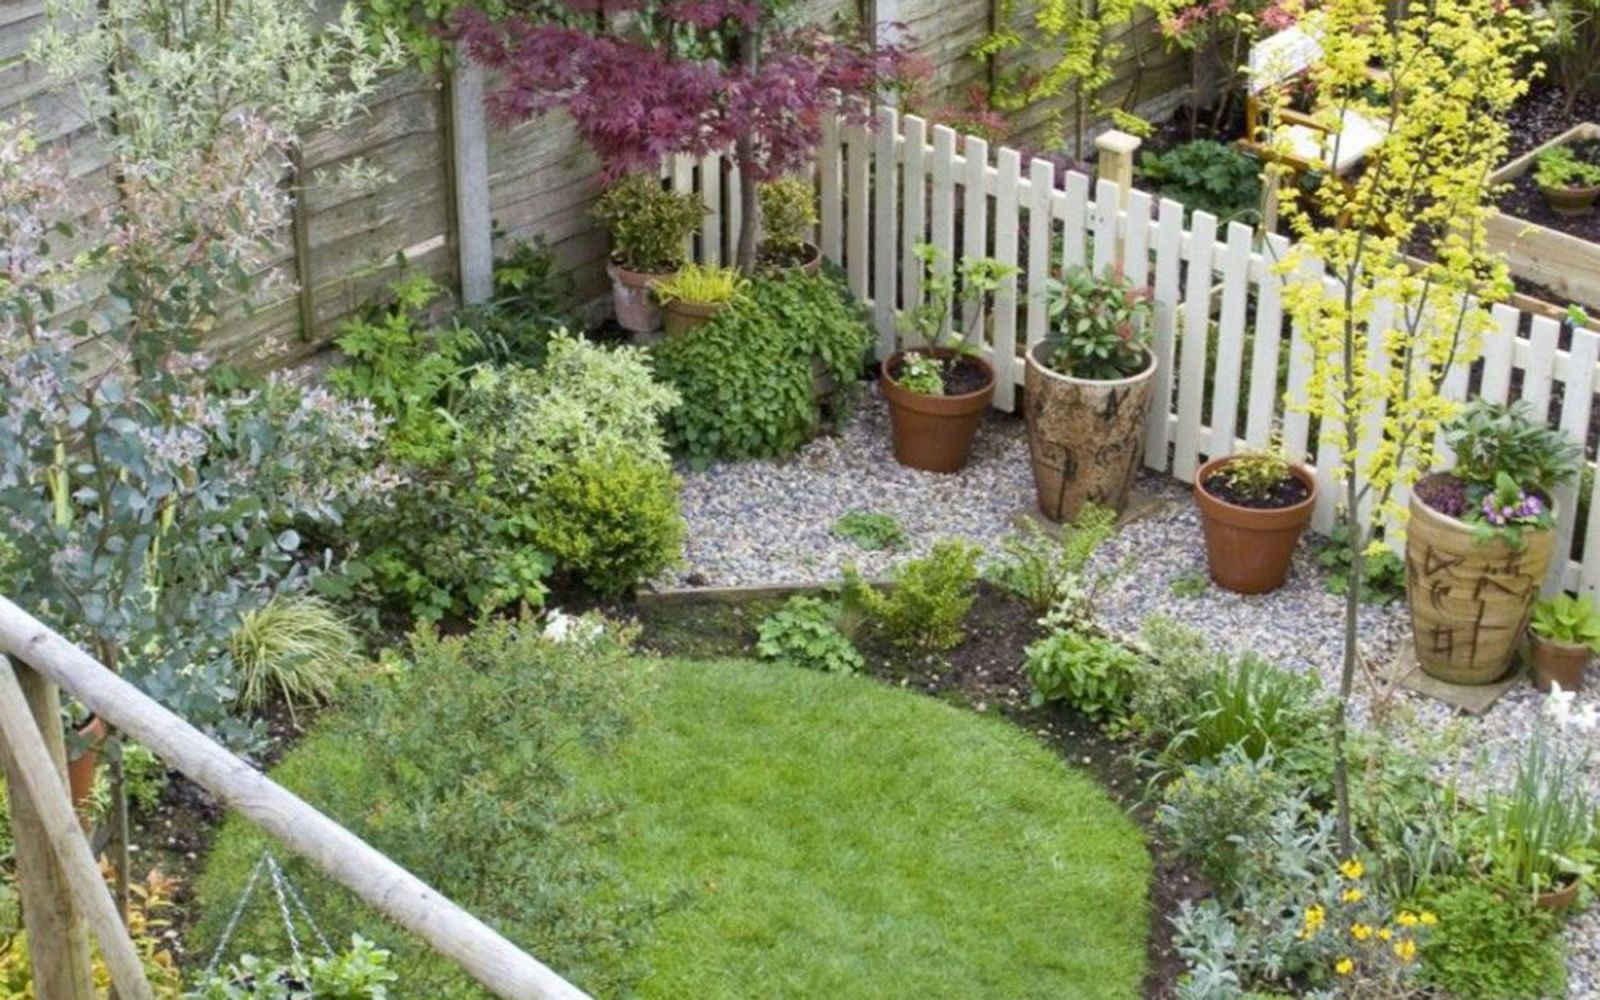 5 smart garden ideas on a budget | Easy garden, Garden diy ...